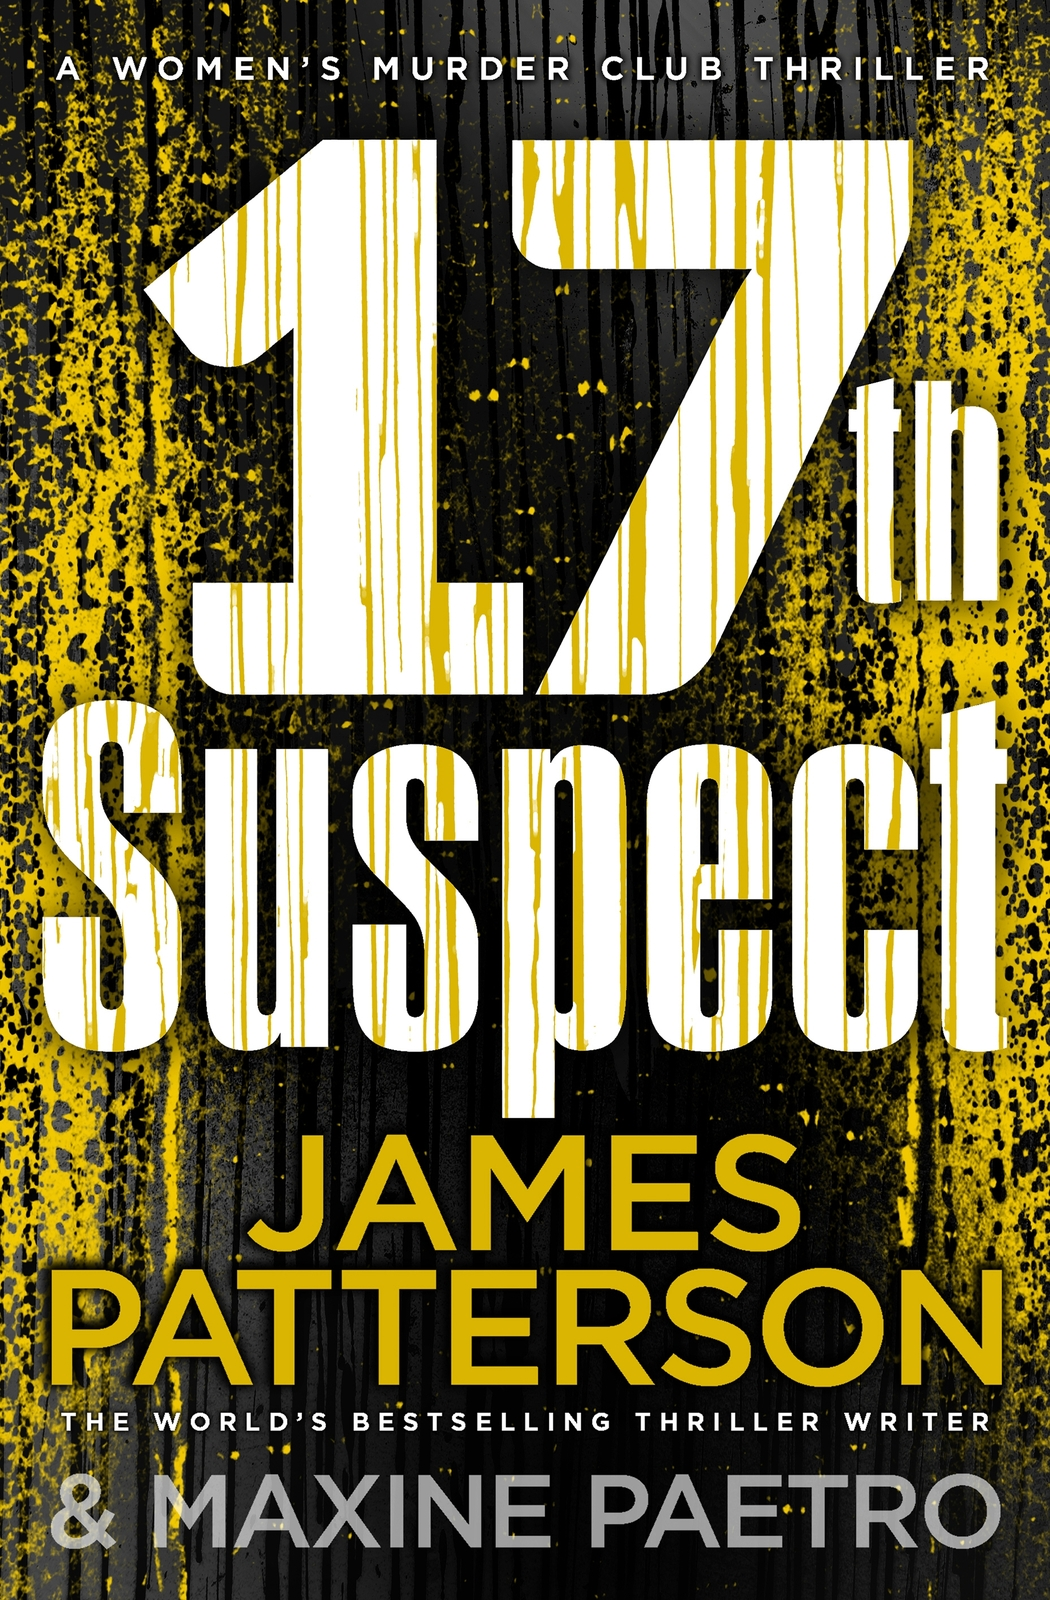 17th Suspect by James Patterson image